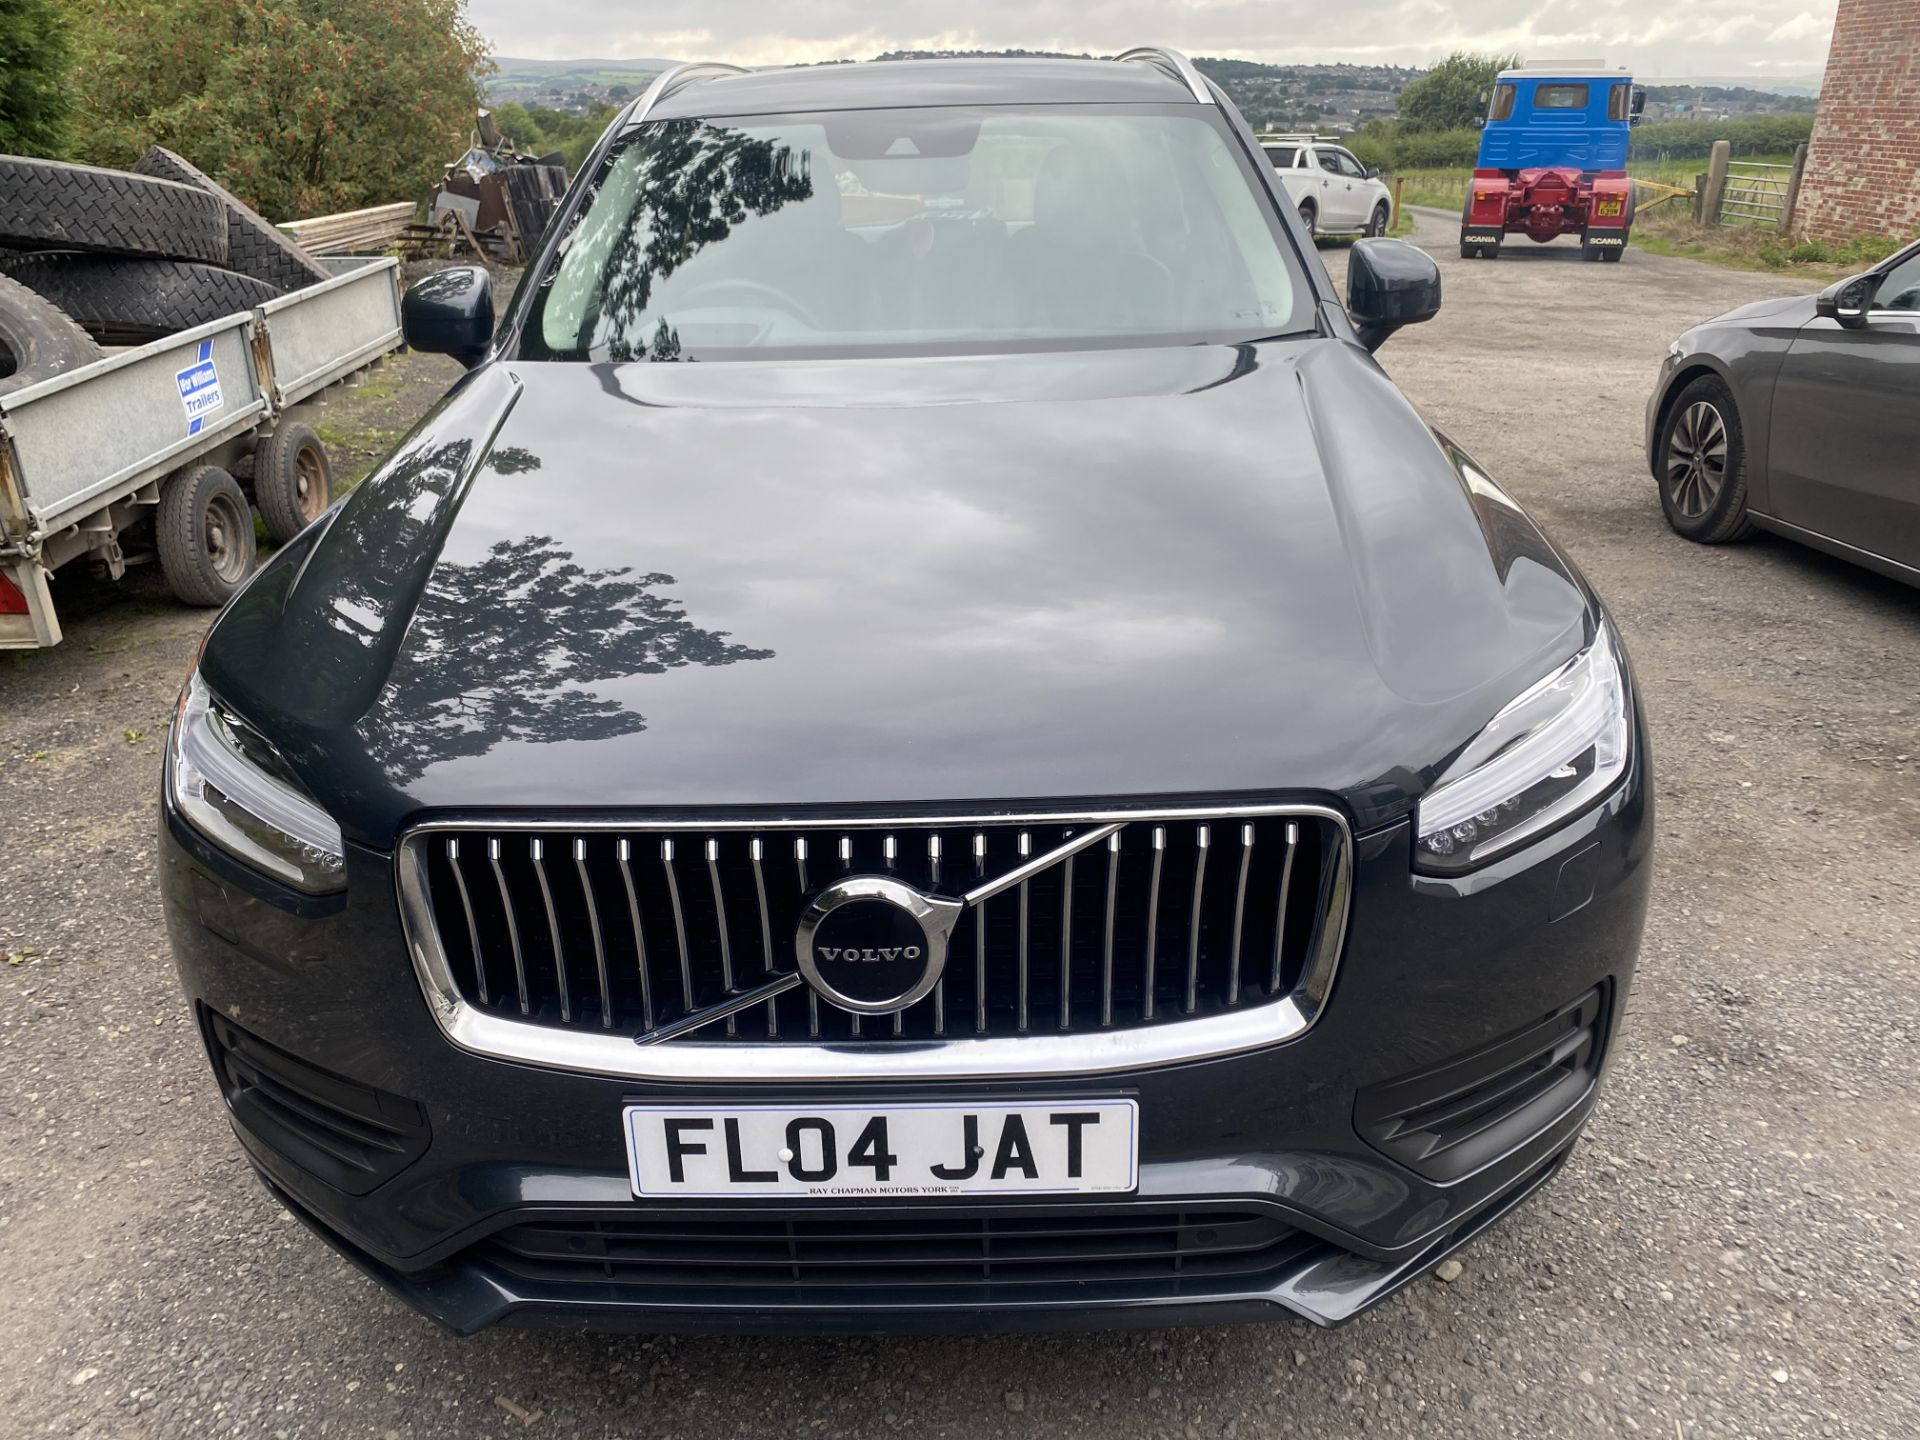 VOLVO XC90 MOMENTUM PRO B5 AWD DIESEL AUTO SUV, registration no. KF69 GWP, date first registered - Image 6 of 12